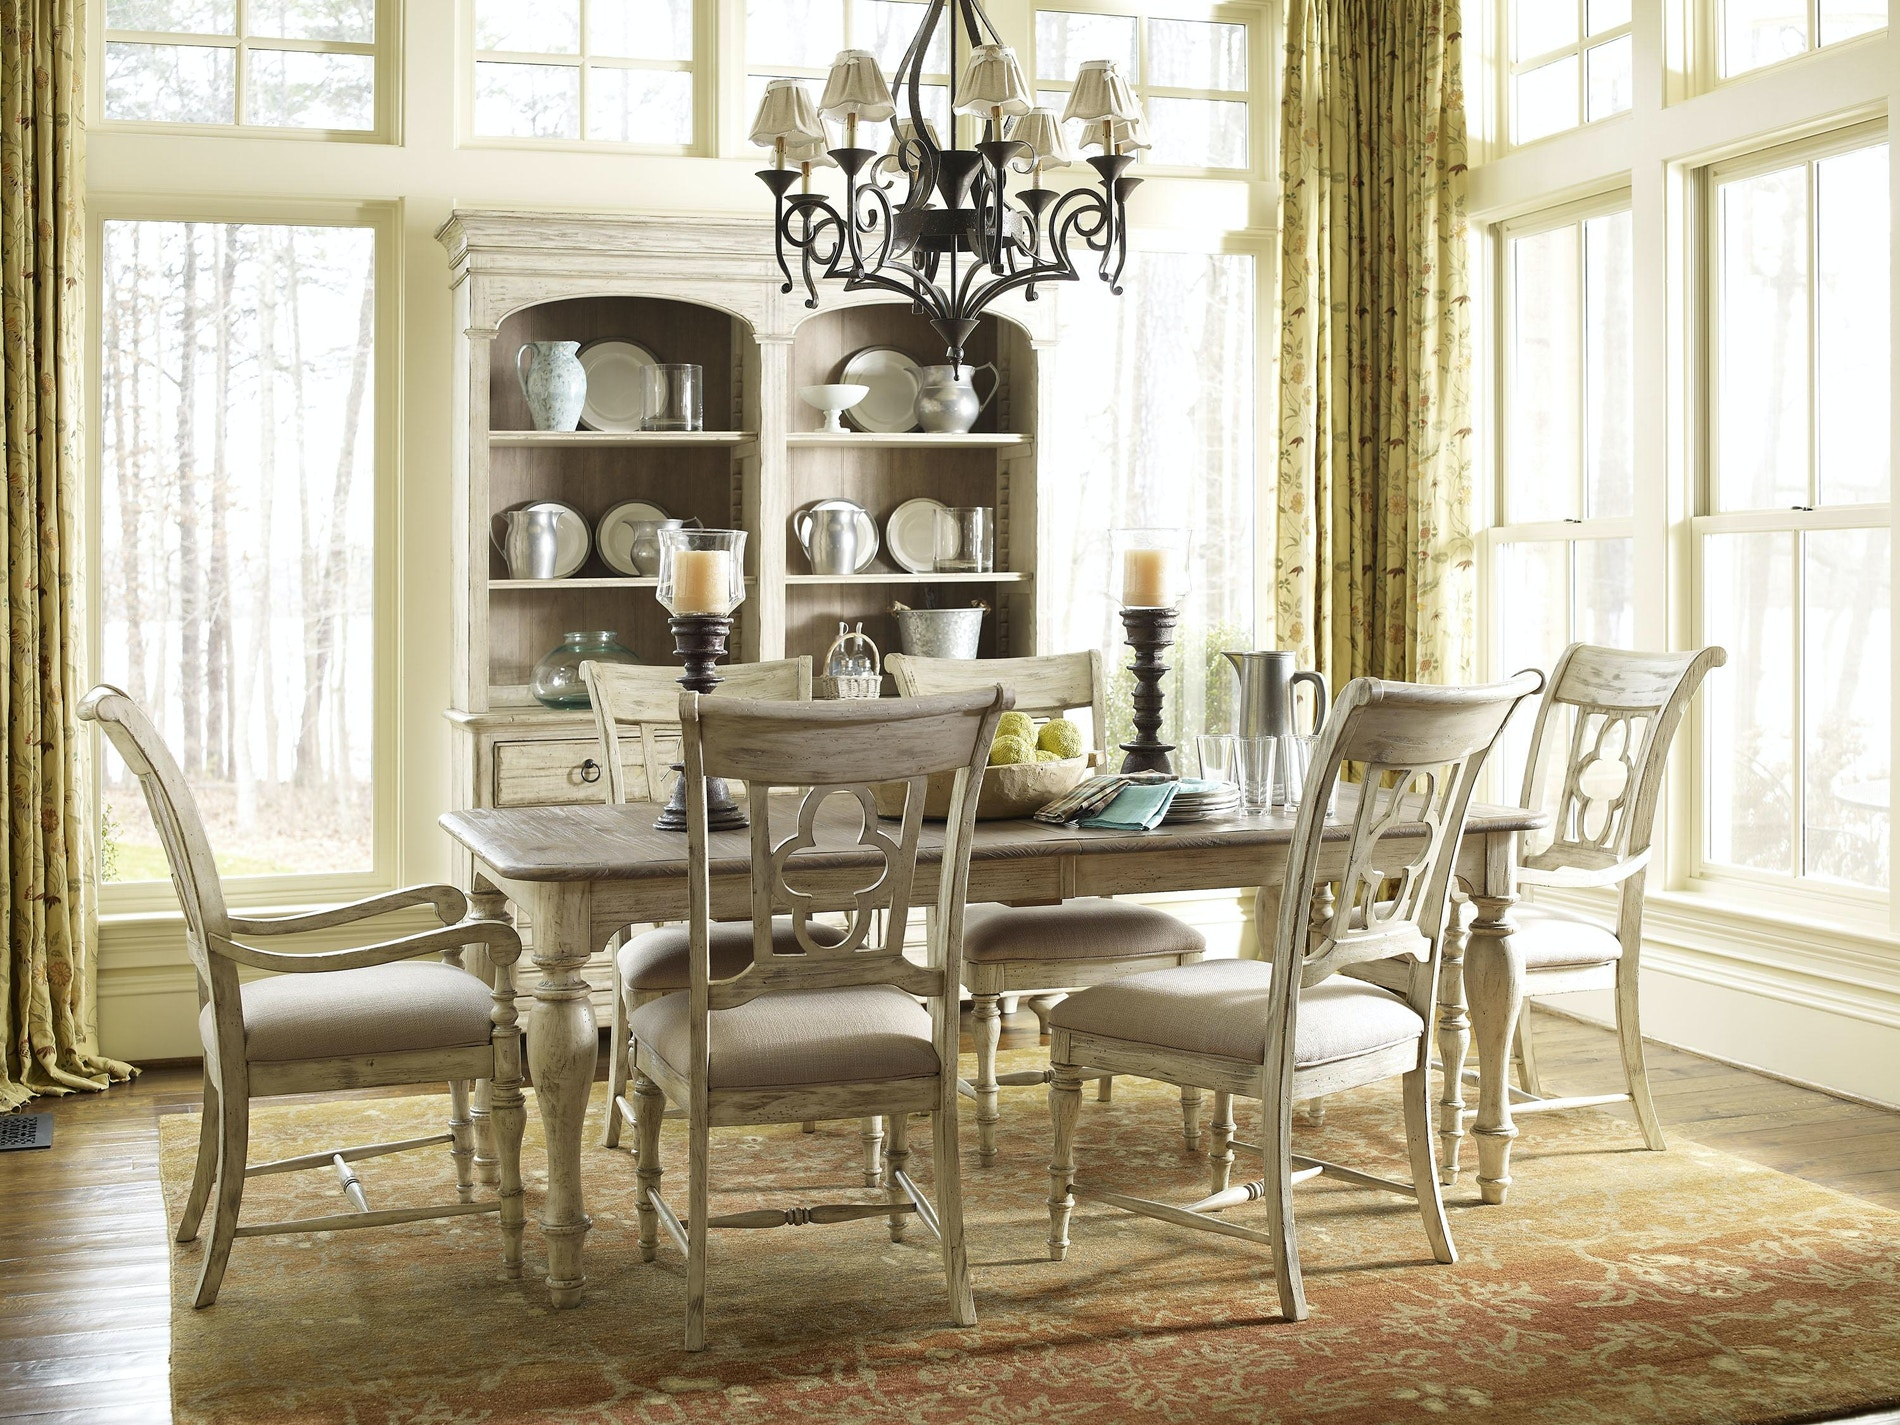 Superior Kincaid Furniture Weatherford Dining Set 176447 Design